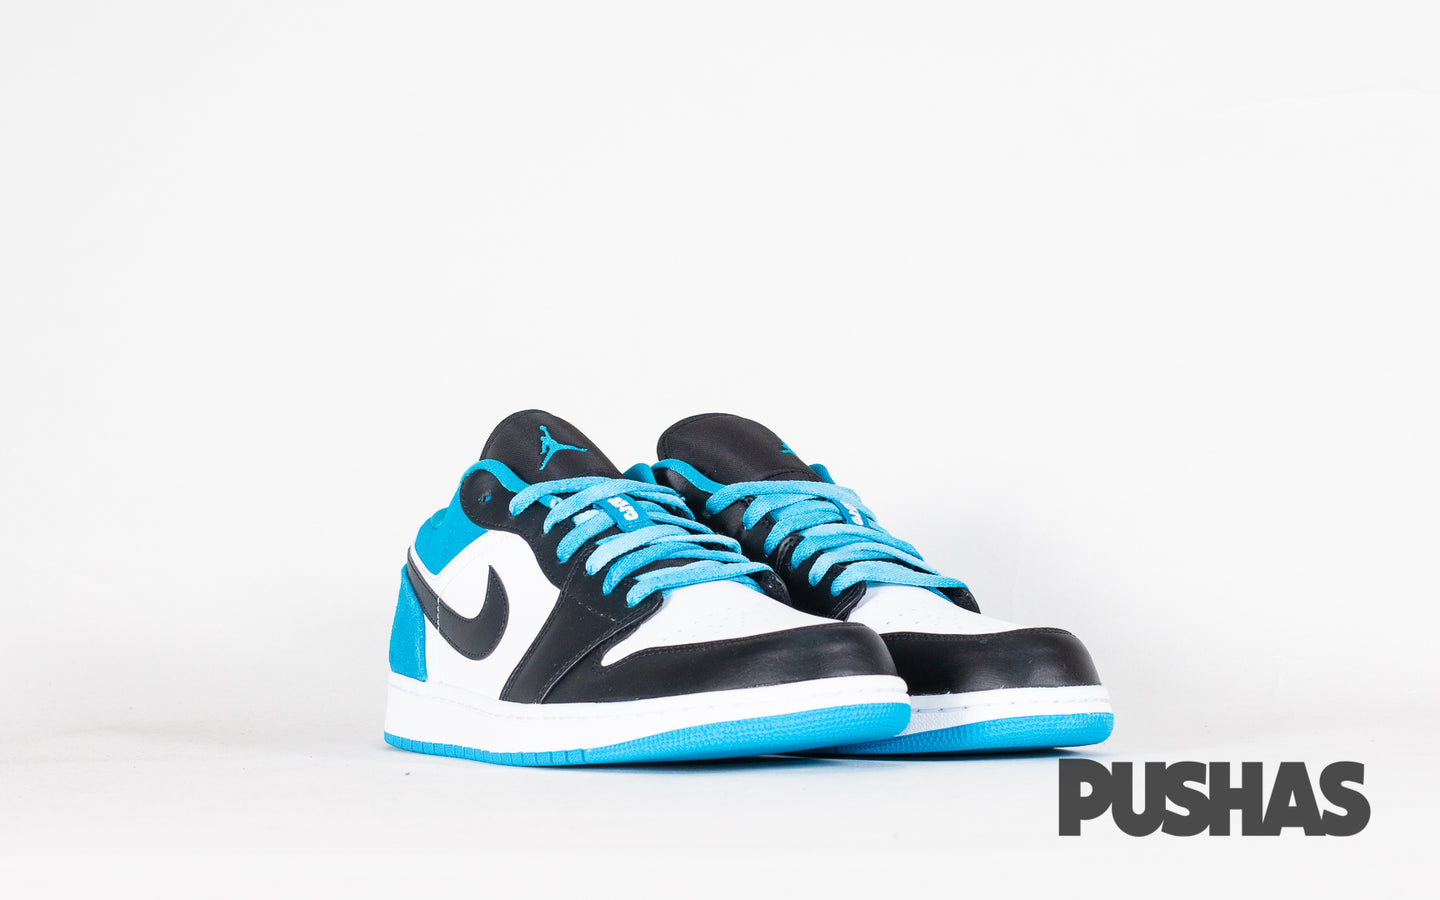 pushas-nike-Air Jordan-1-Low-Laser-Blue